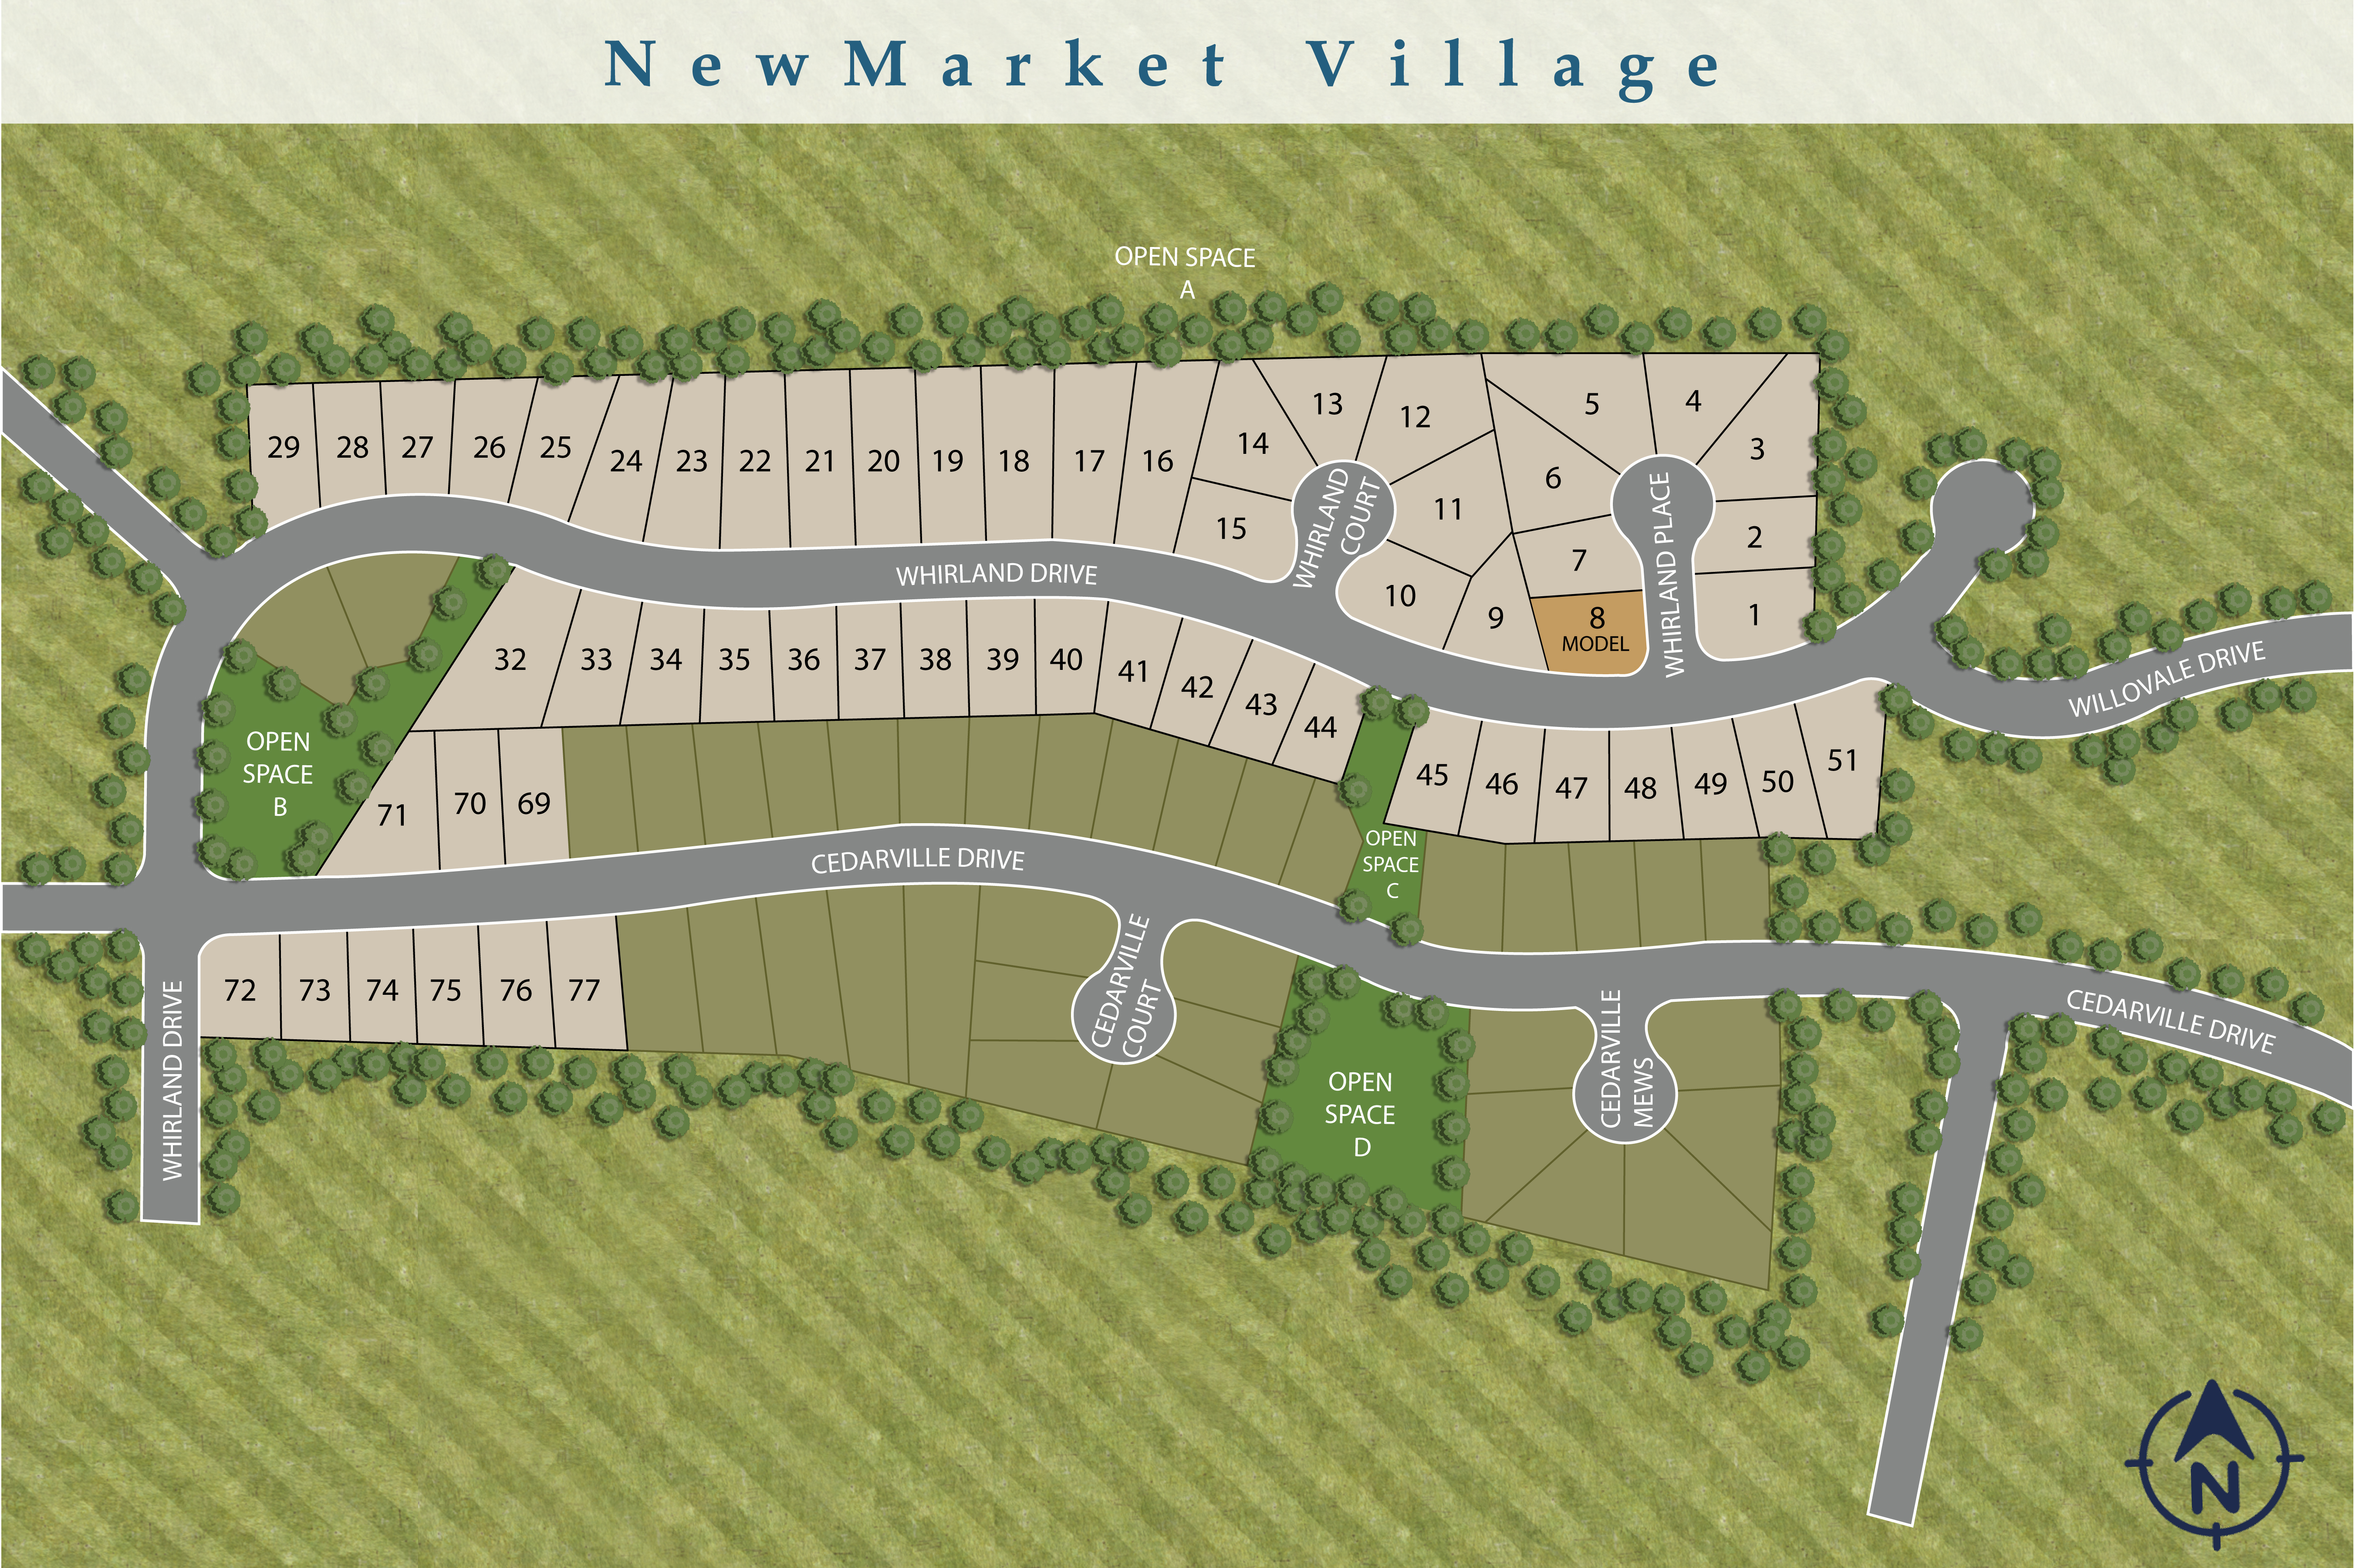 Midlothian, VA NewMarket Village at RounTrey New Homes from Stylecraft Builders